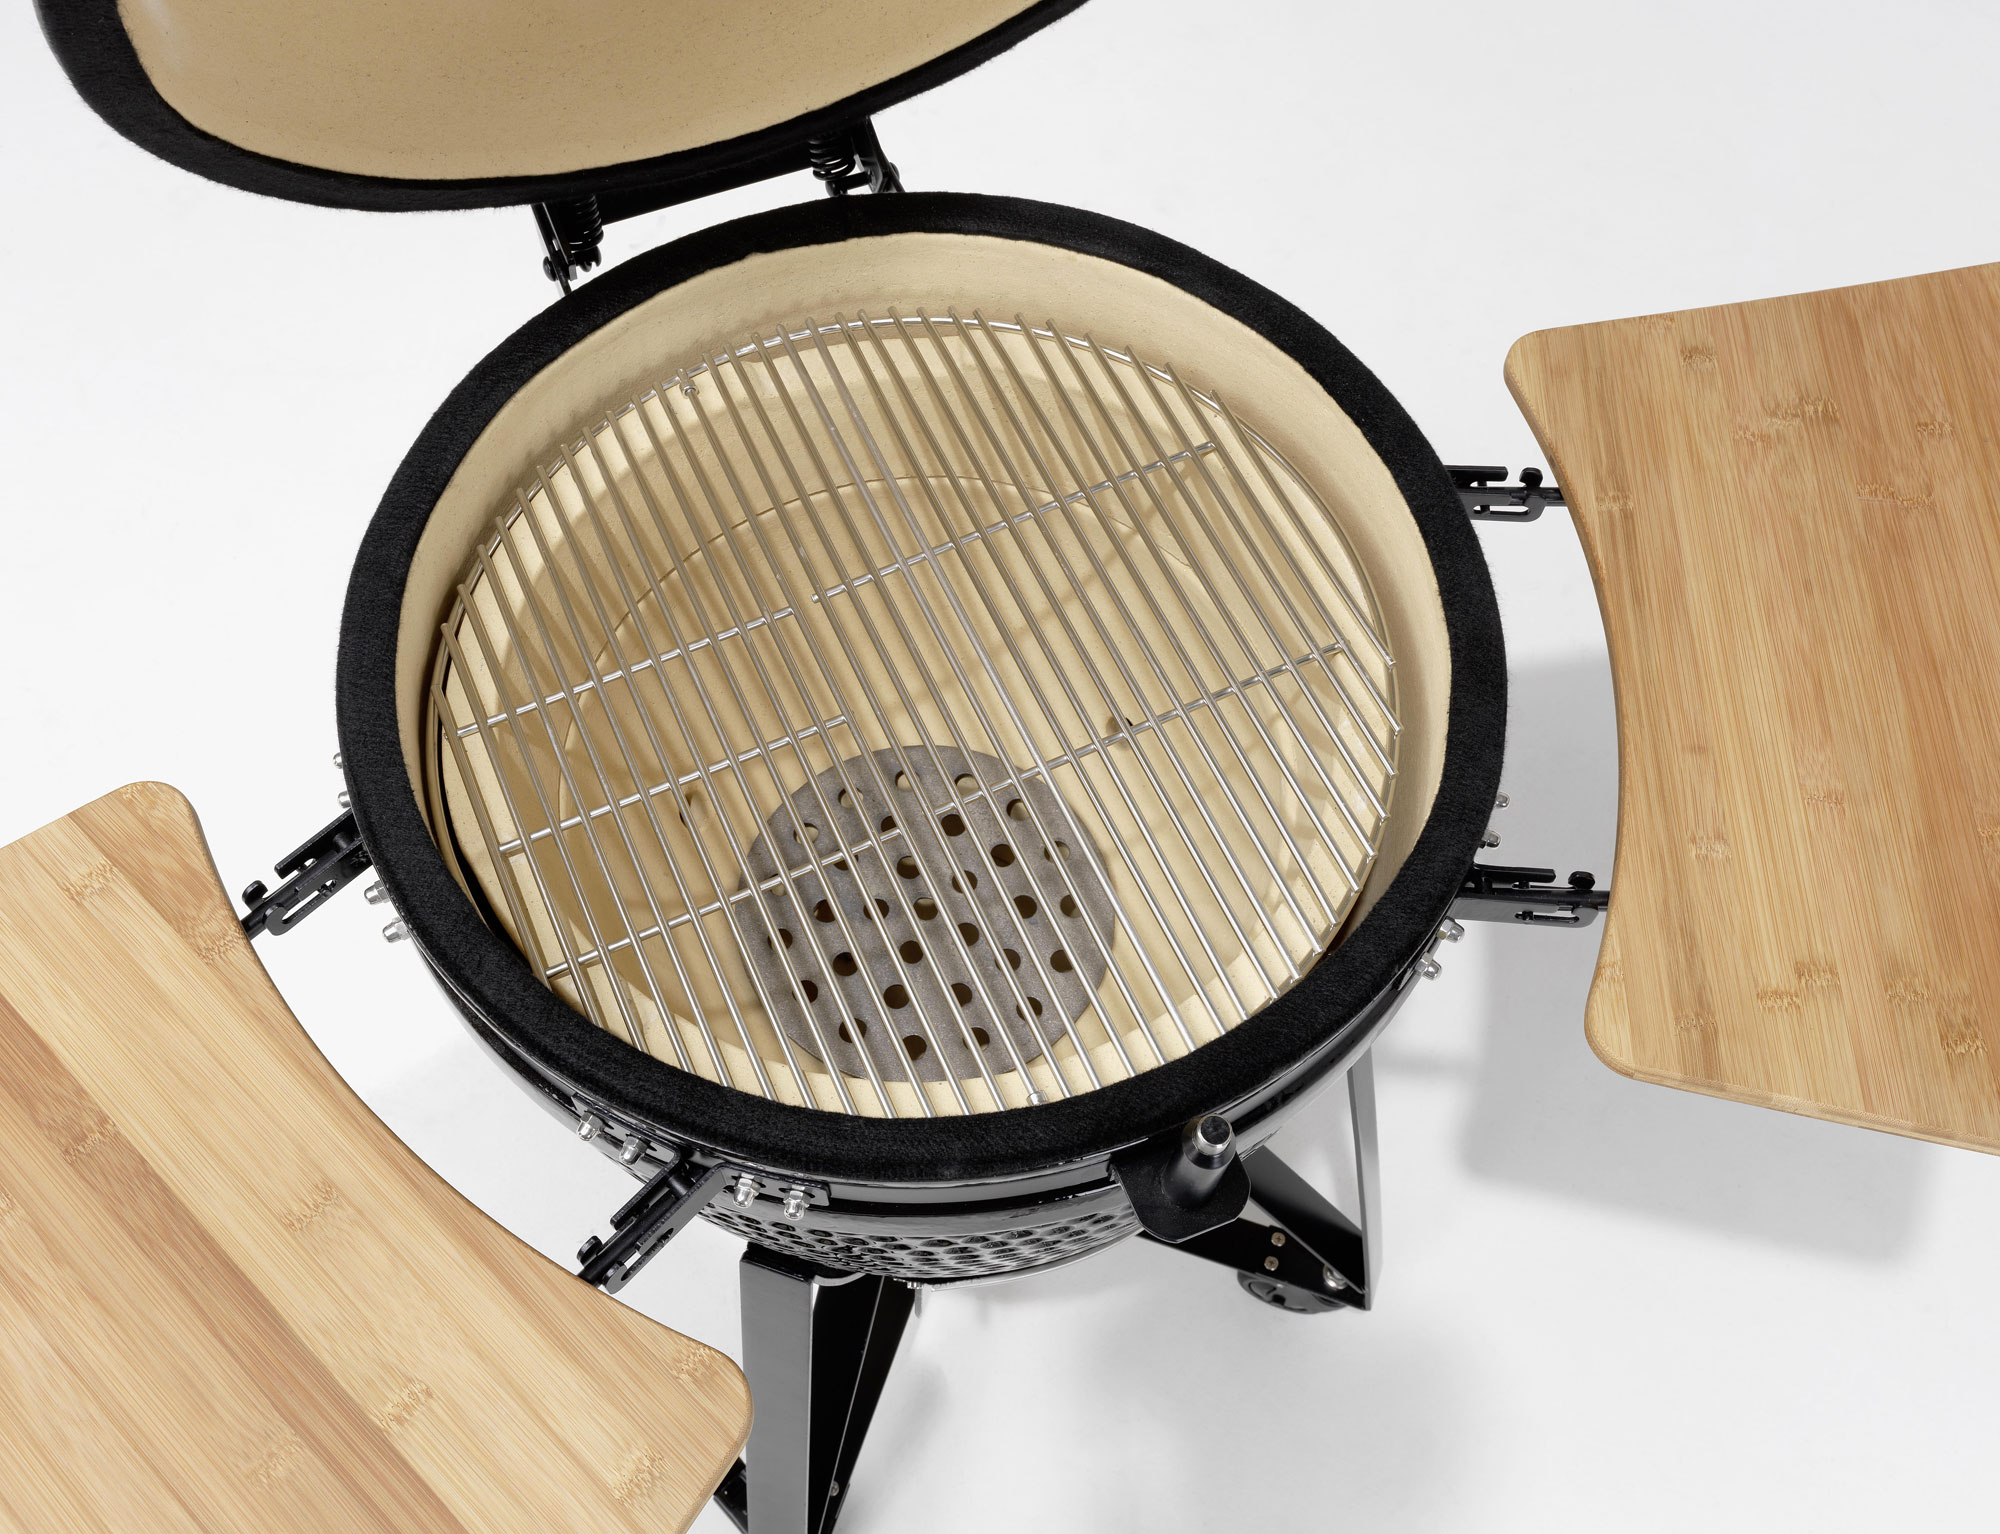 Holzgrill / Keramikgrill Justus Black J'Egg XL Chip Supply Ø47cm Bild 4